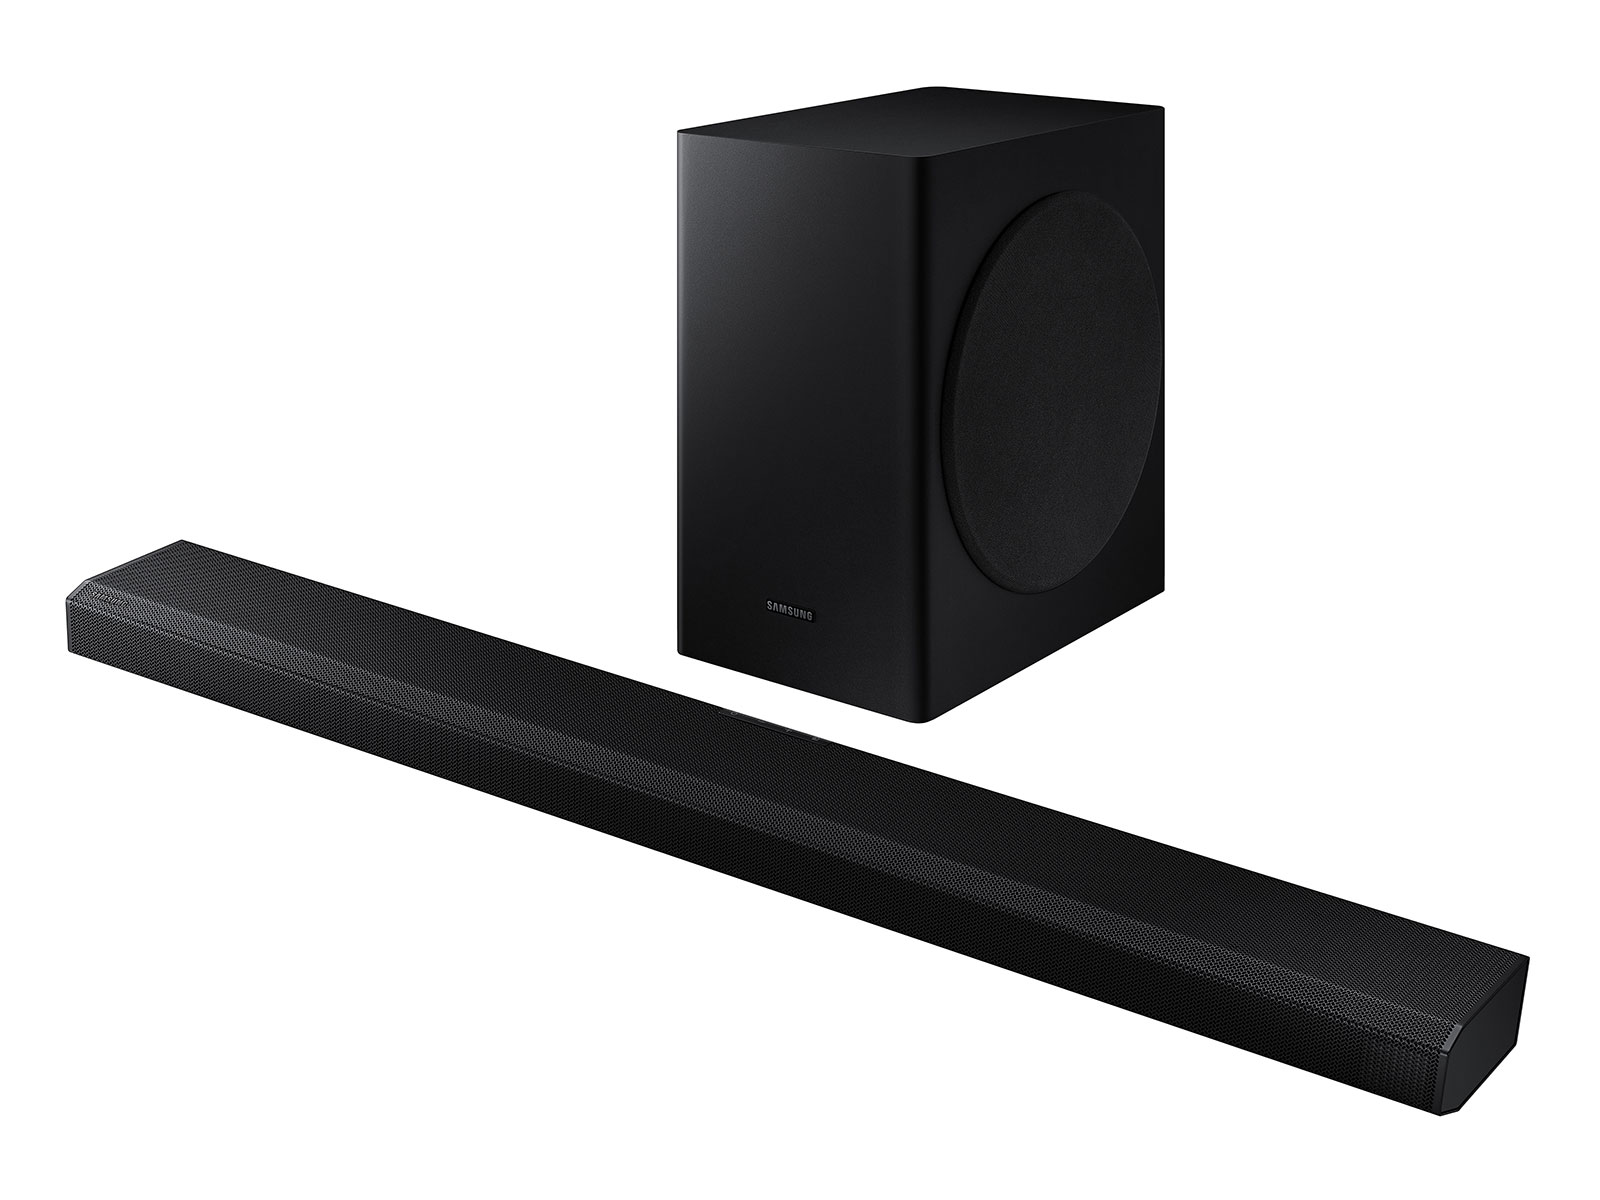 Samsung HW-Q70T 3.1.2 Channel Smart Soundbar with Dolby Atmos, DTS:X, Black